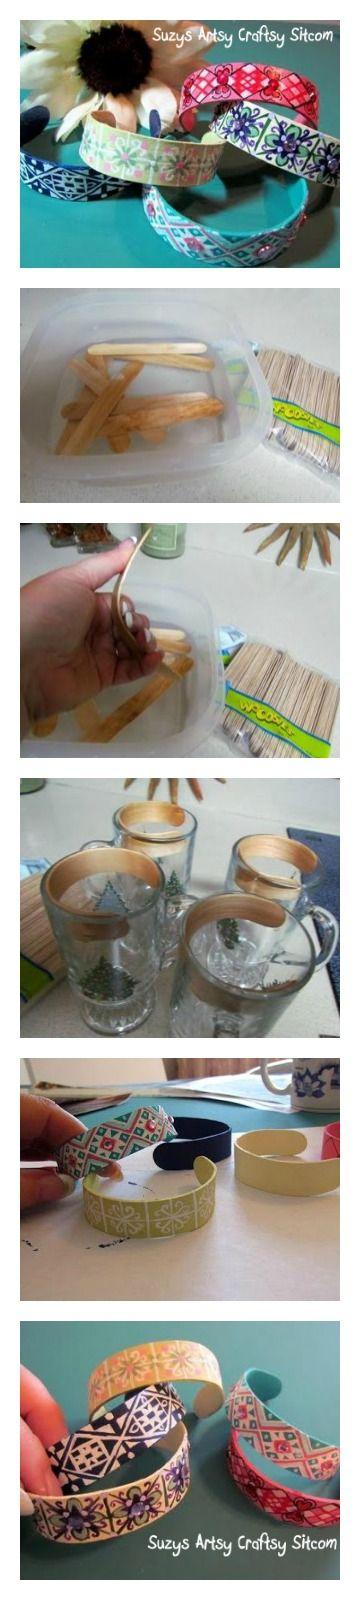 Bend popsicle sticks to make cute popsicle stick bracelets! Tip: Boiling or steaming the craft sticks works better than just water!